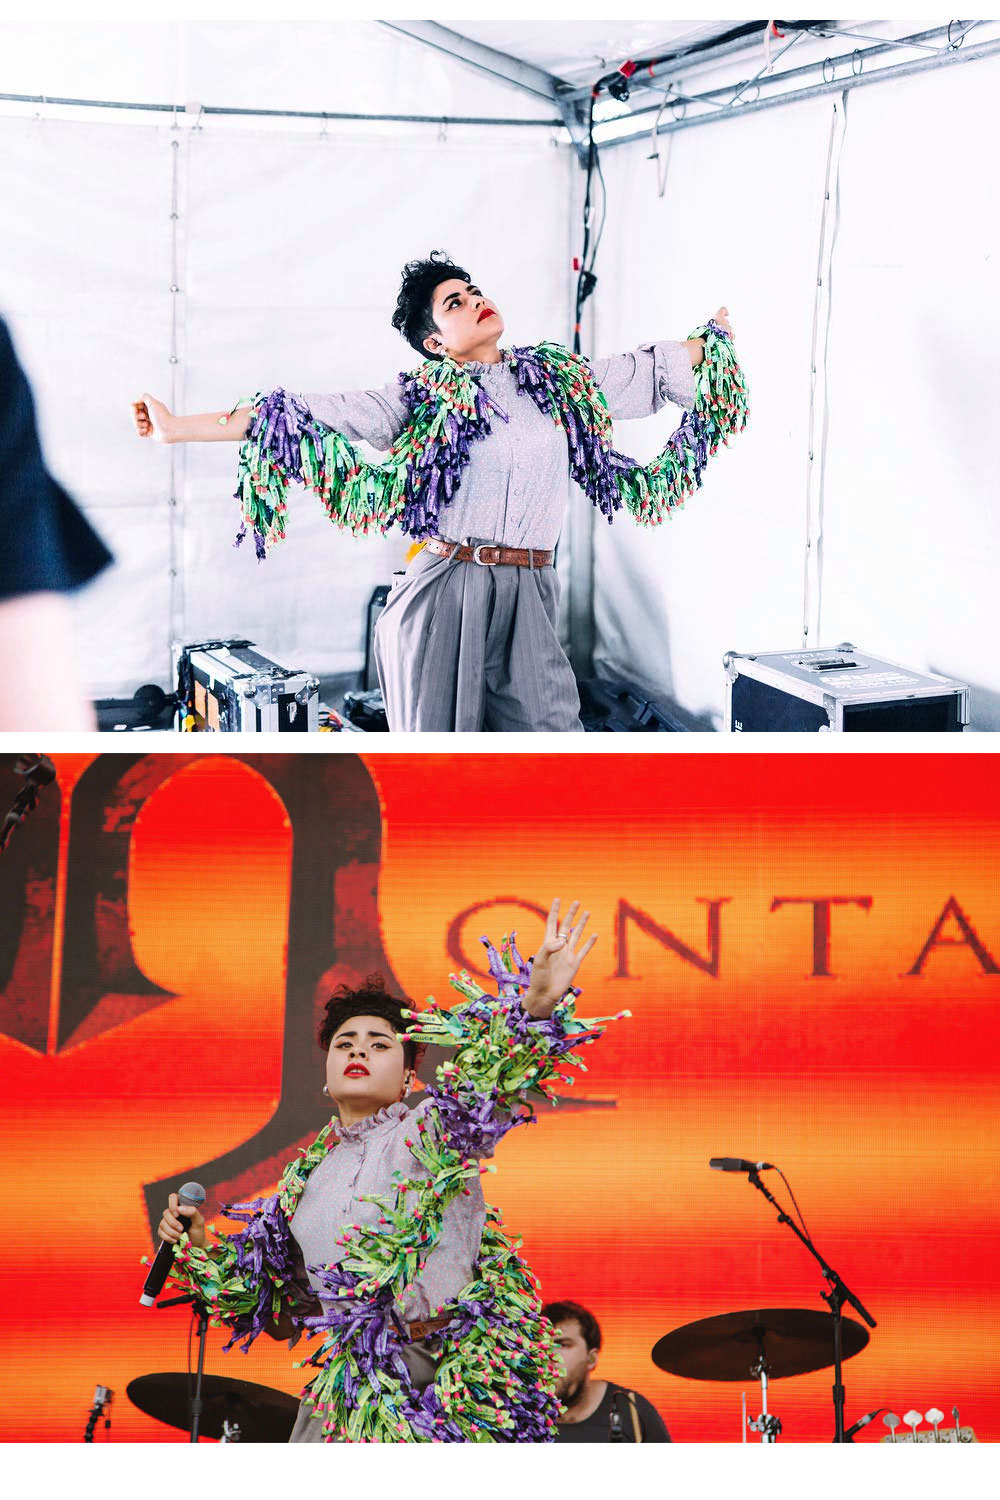 Wristband Throw, Groovin' the Moo festival wristbands knotted together. Worn by Montaigne at Groovin' the Moo 2017.